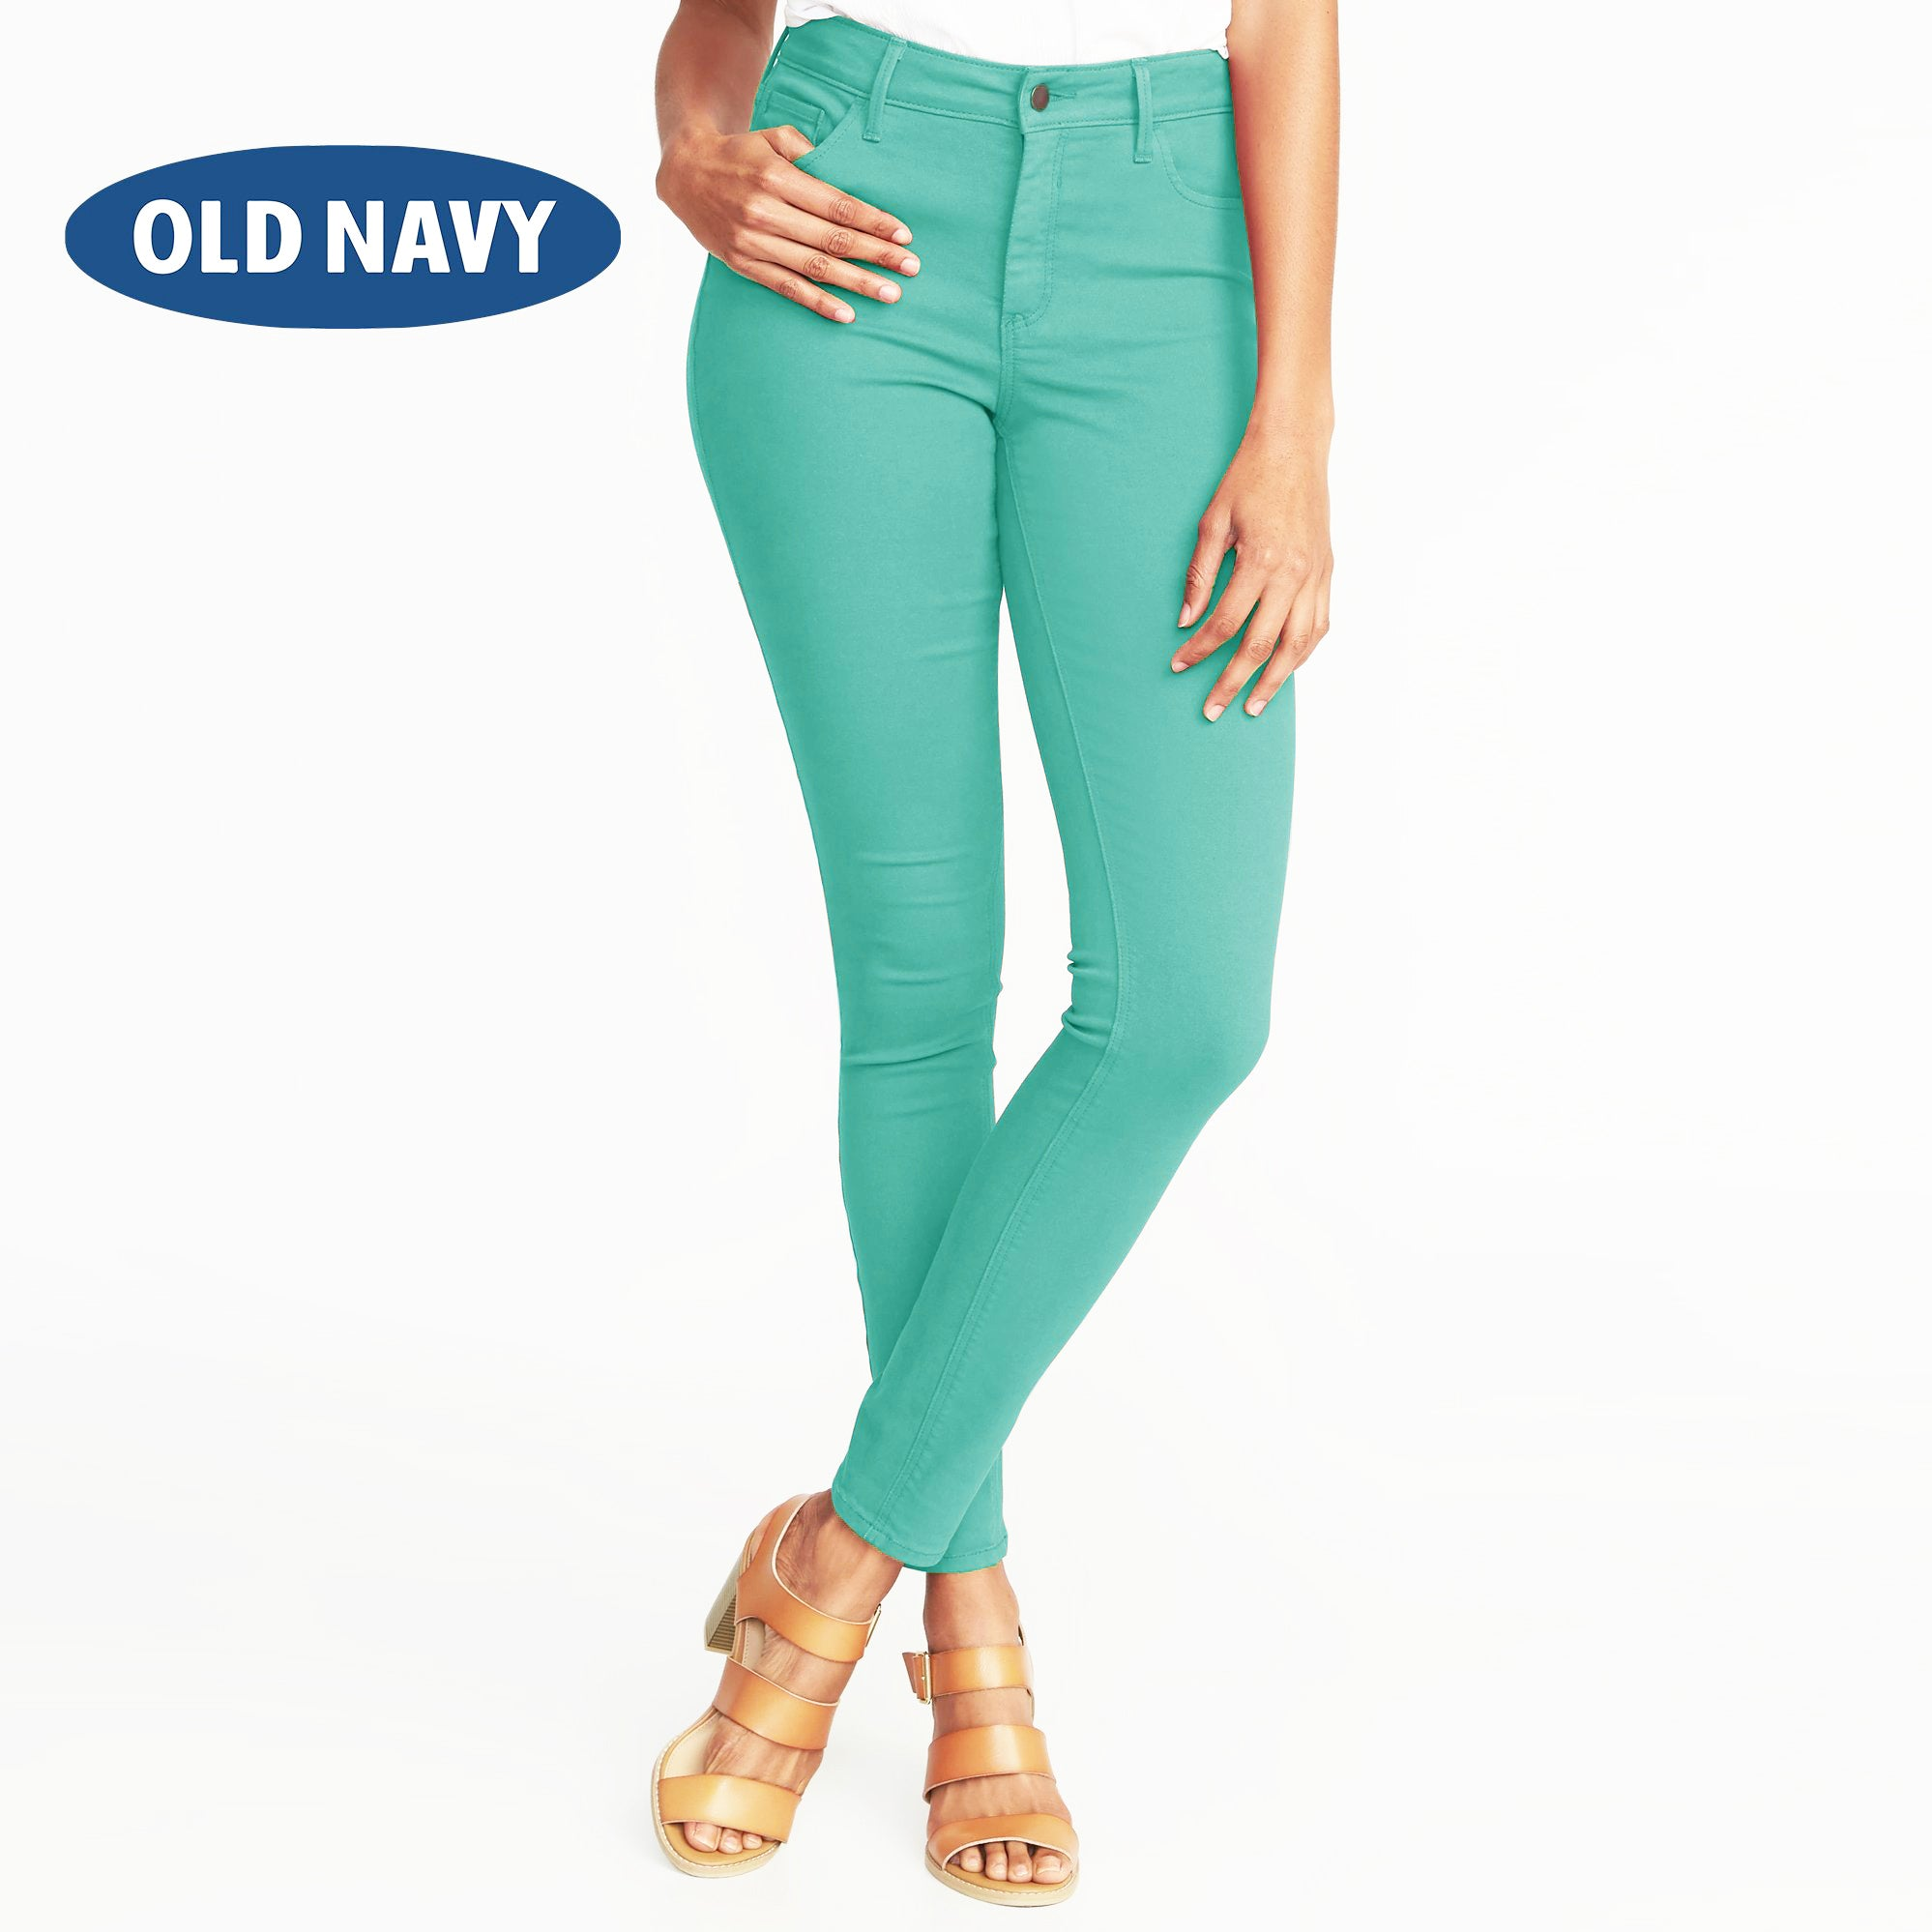 Old Navy Stylish Slim Fit Denim For Ladies-Light Turquoise -NA7682